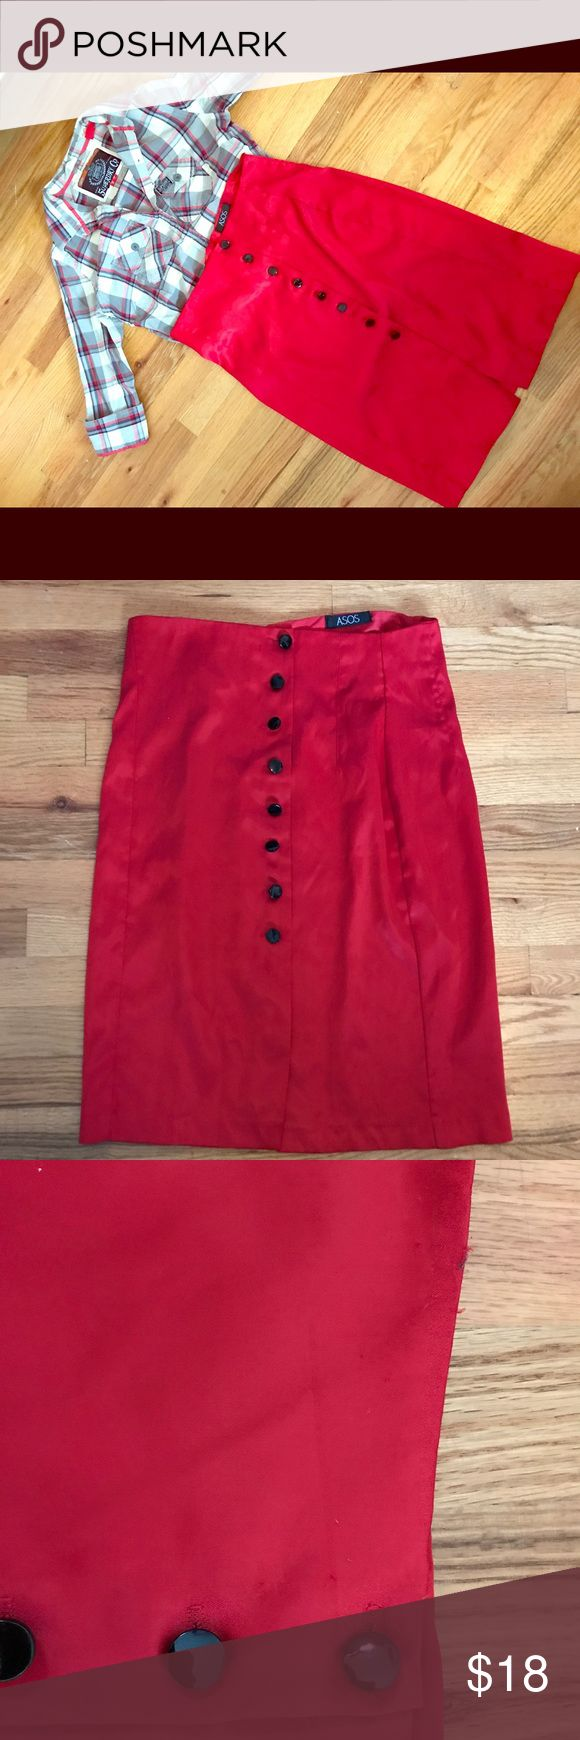 Asos Red Pencil Skirt Asos Red Pencil Skirt. Plastic button closures down the front. Great comfortable fit. Silk like material. Has been gently loved, some signs of pulling around top of skirt. ASOS Skirts Pencil